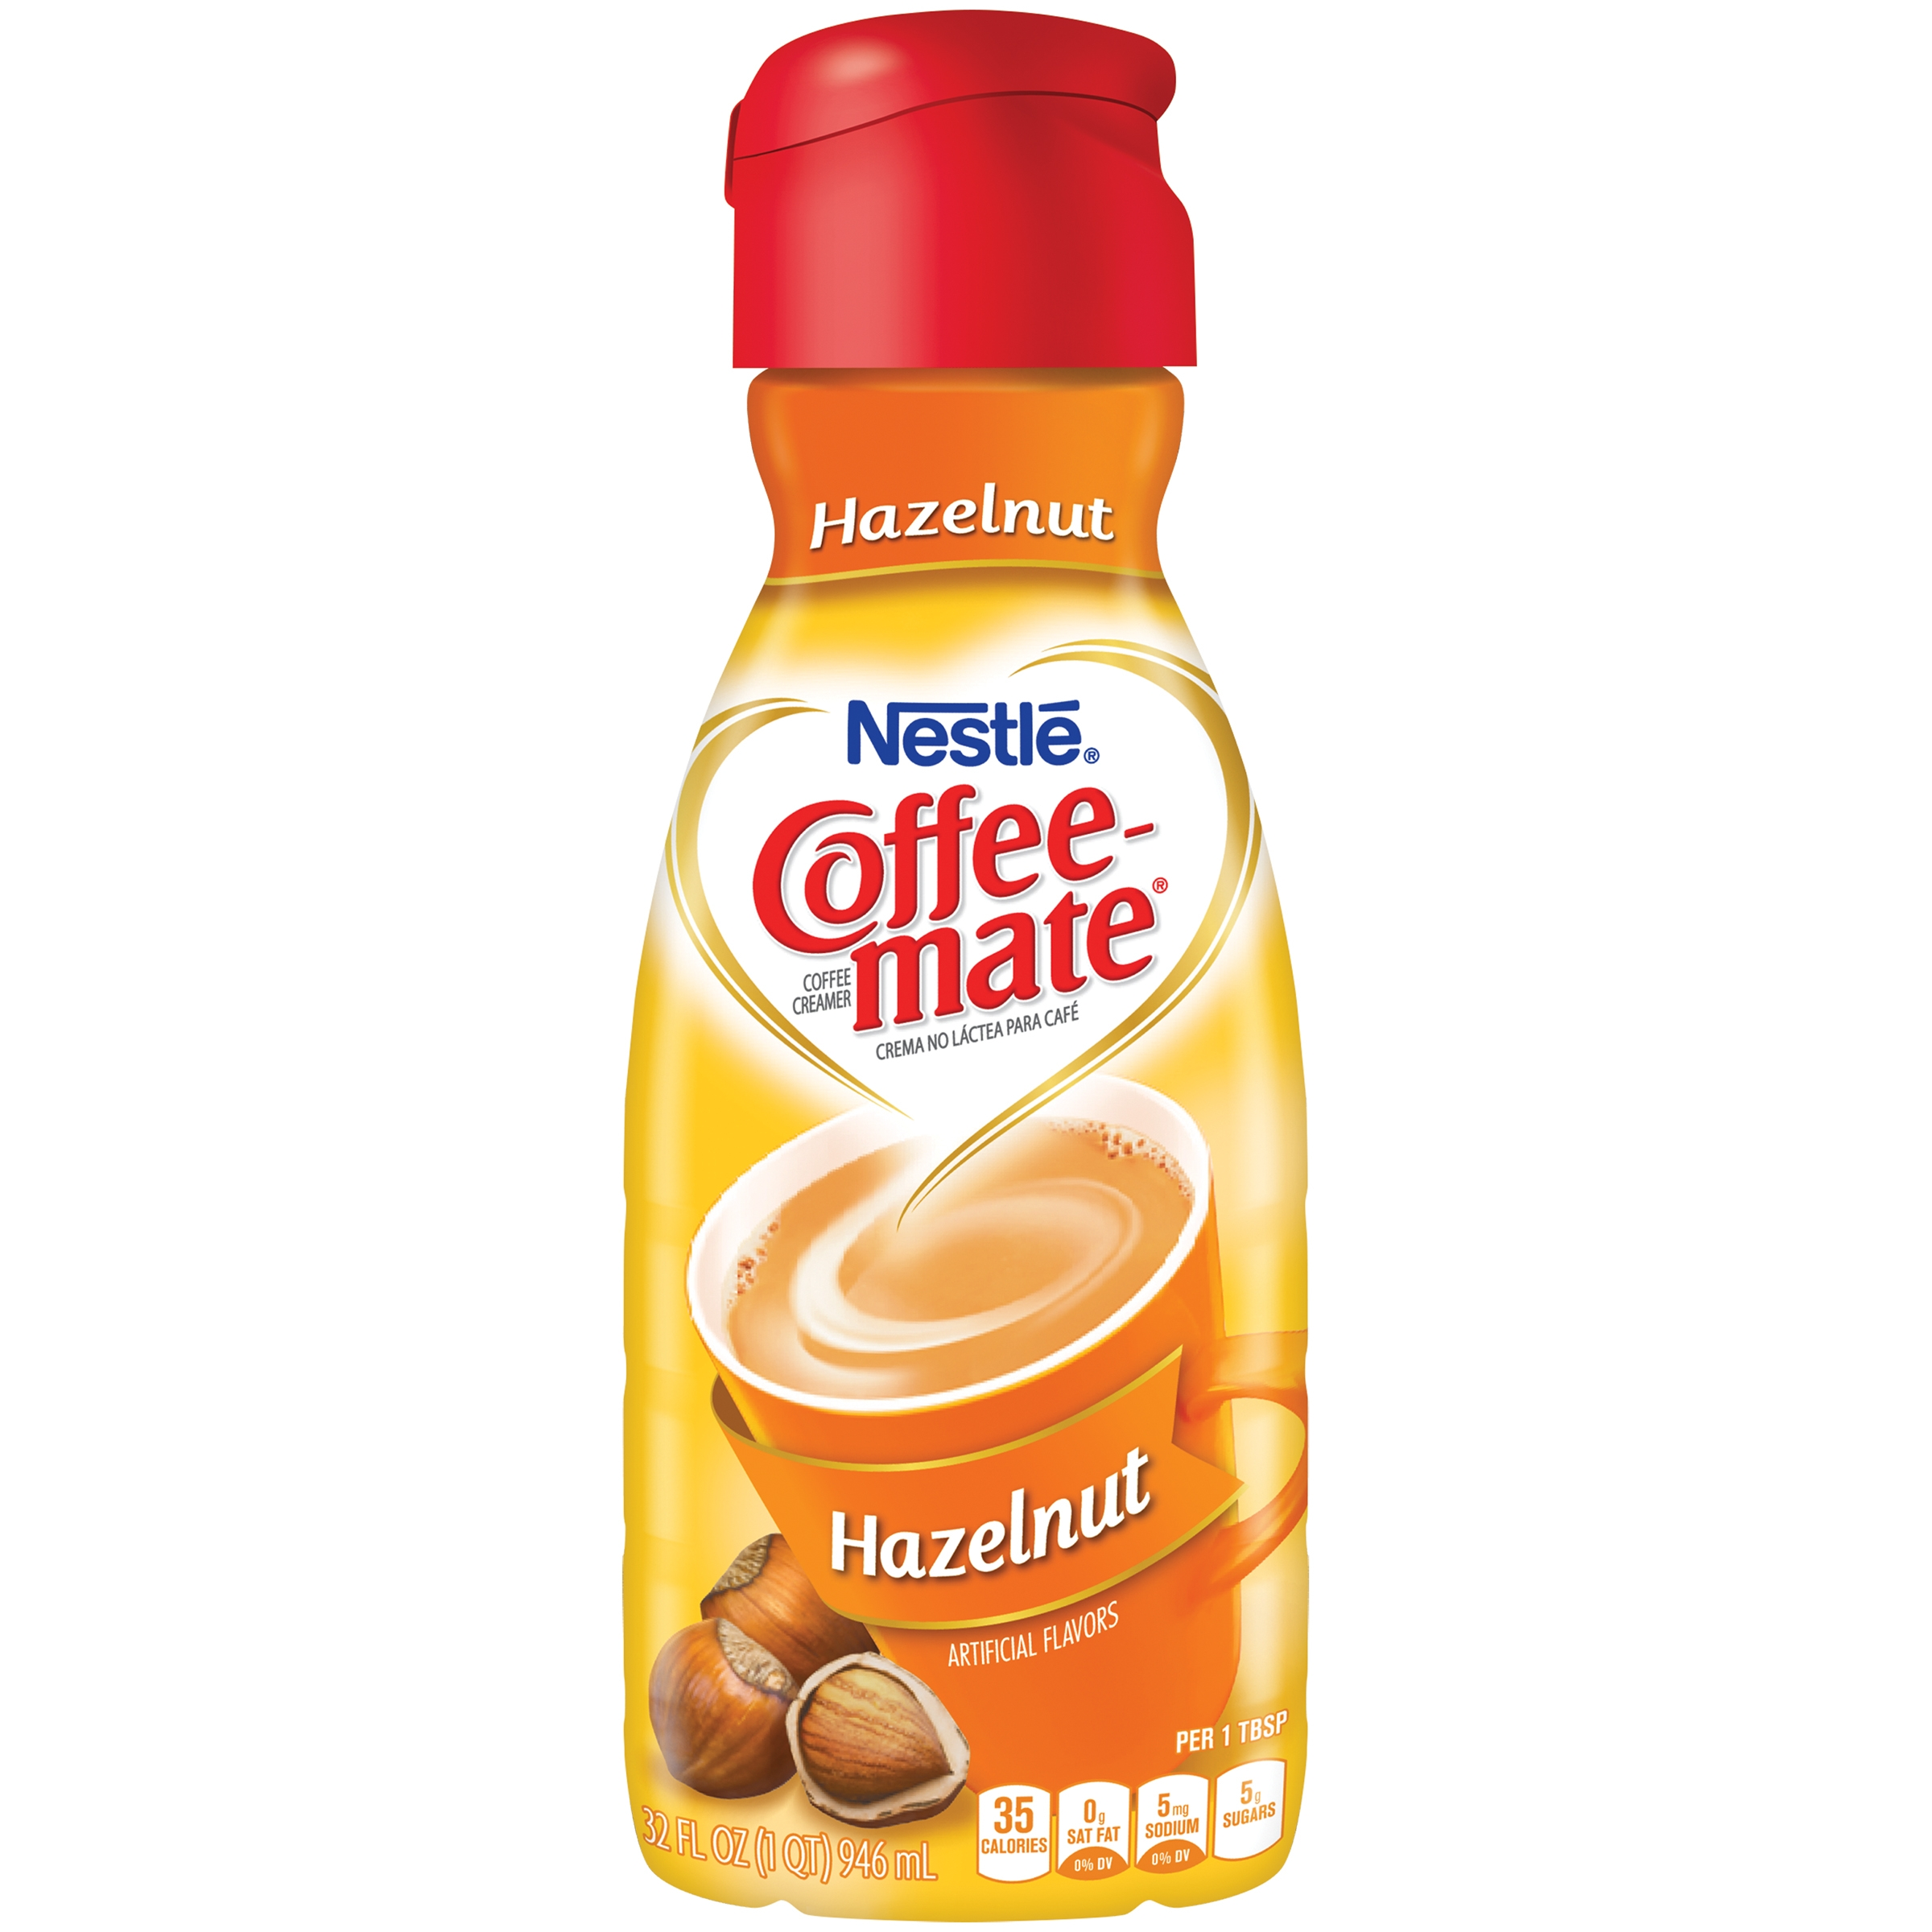 COFFEE-MATE Hazelnut Liquid Coffee Creamer 32 fl. oz. Bottle